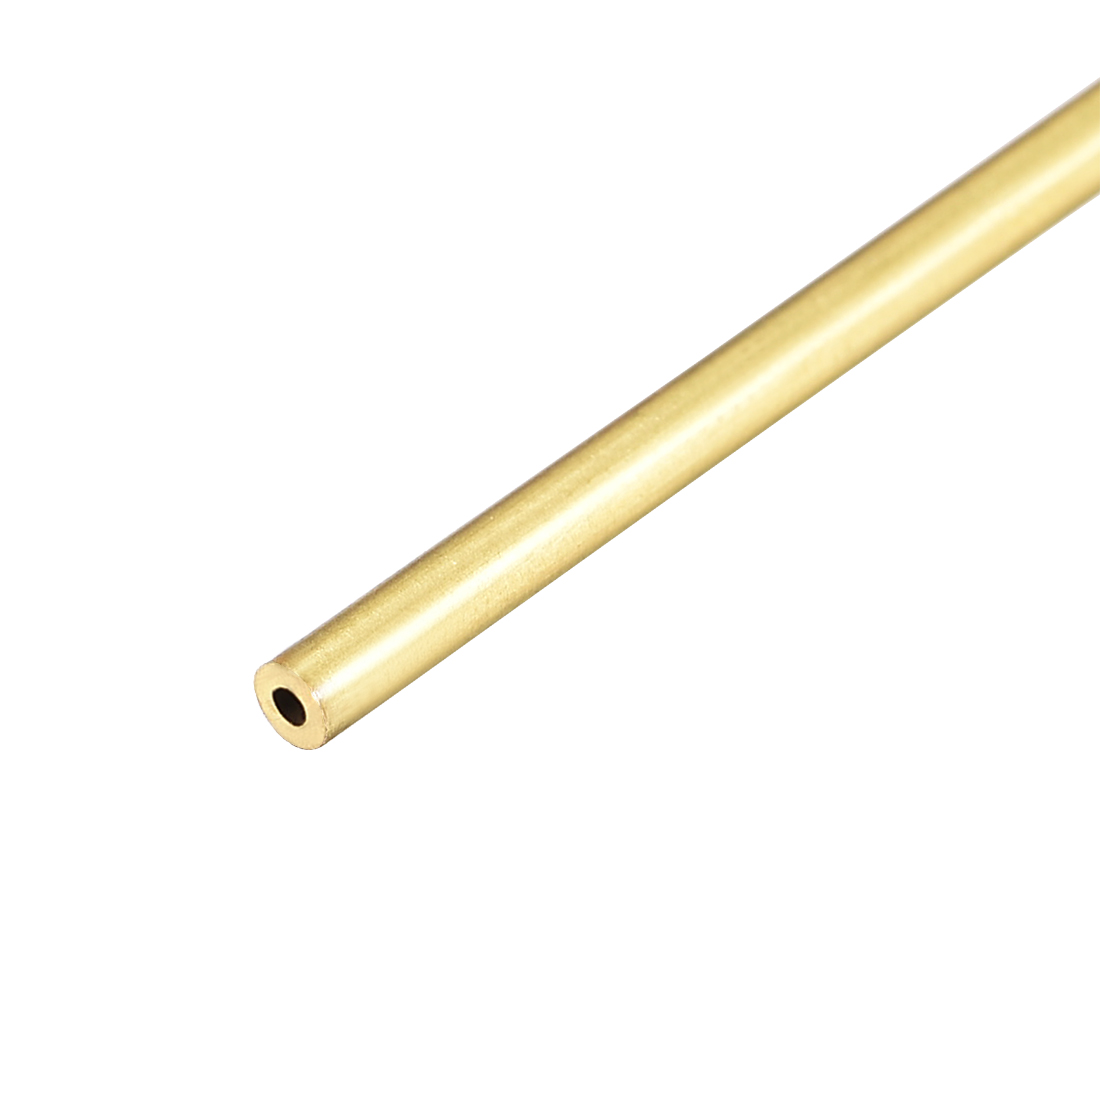 Uxcell Brass Round Tube 300mm Length 2mm OD 0.5mm Wall Thickness Seamless Straight Pipe Tubing